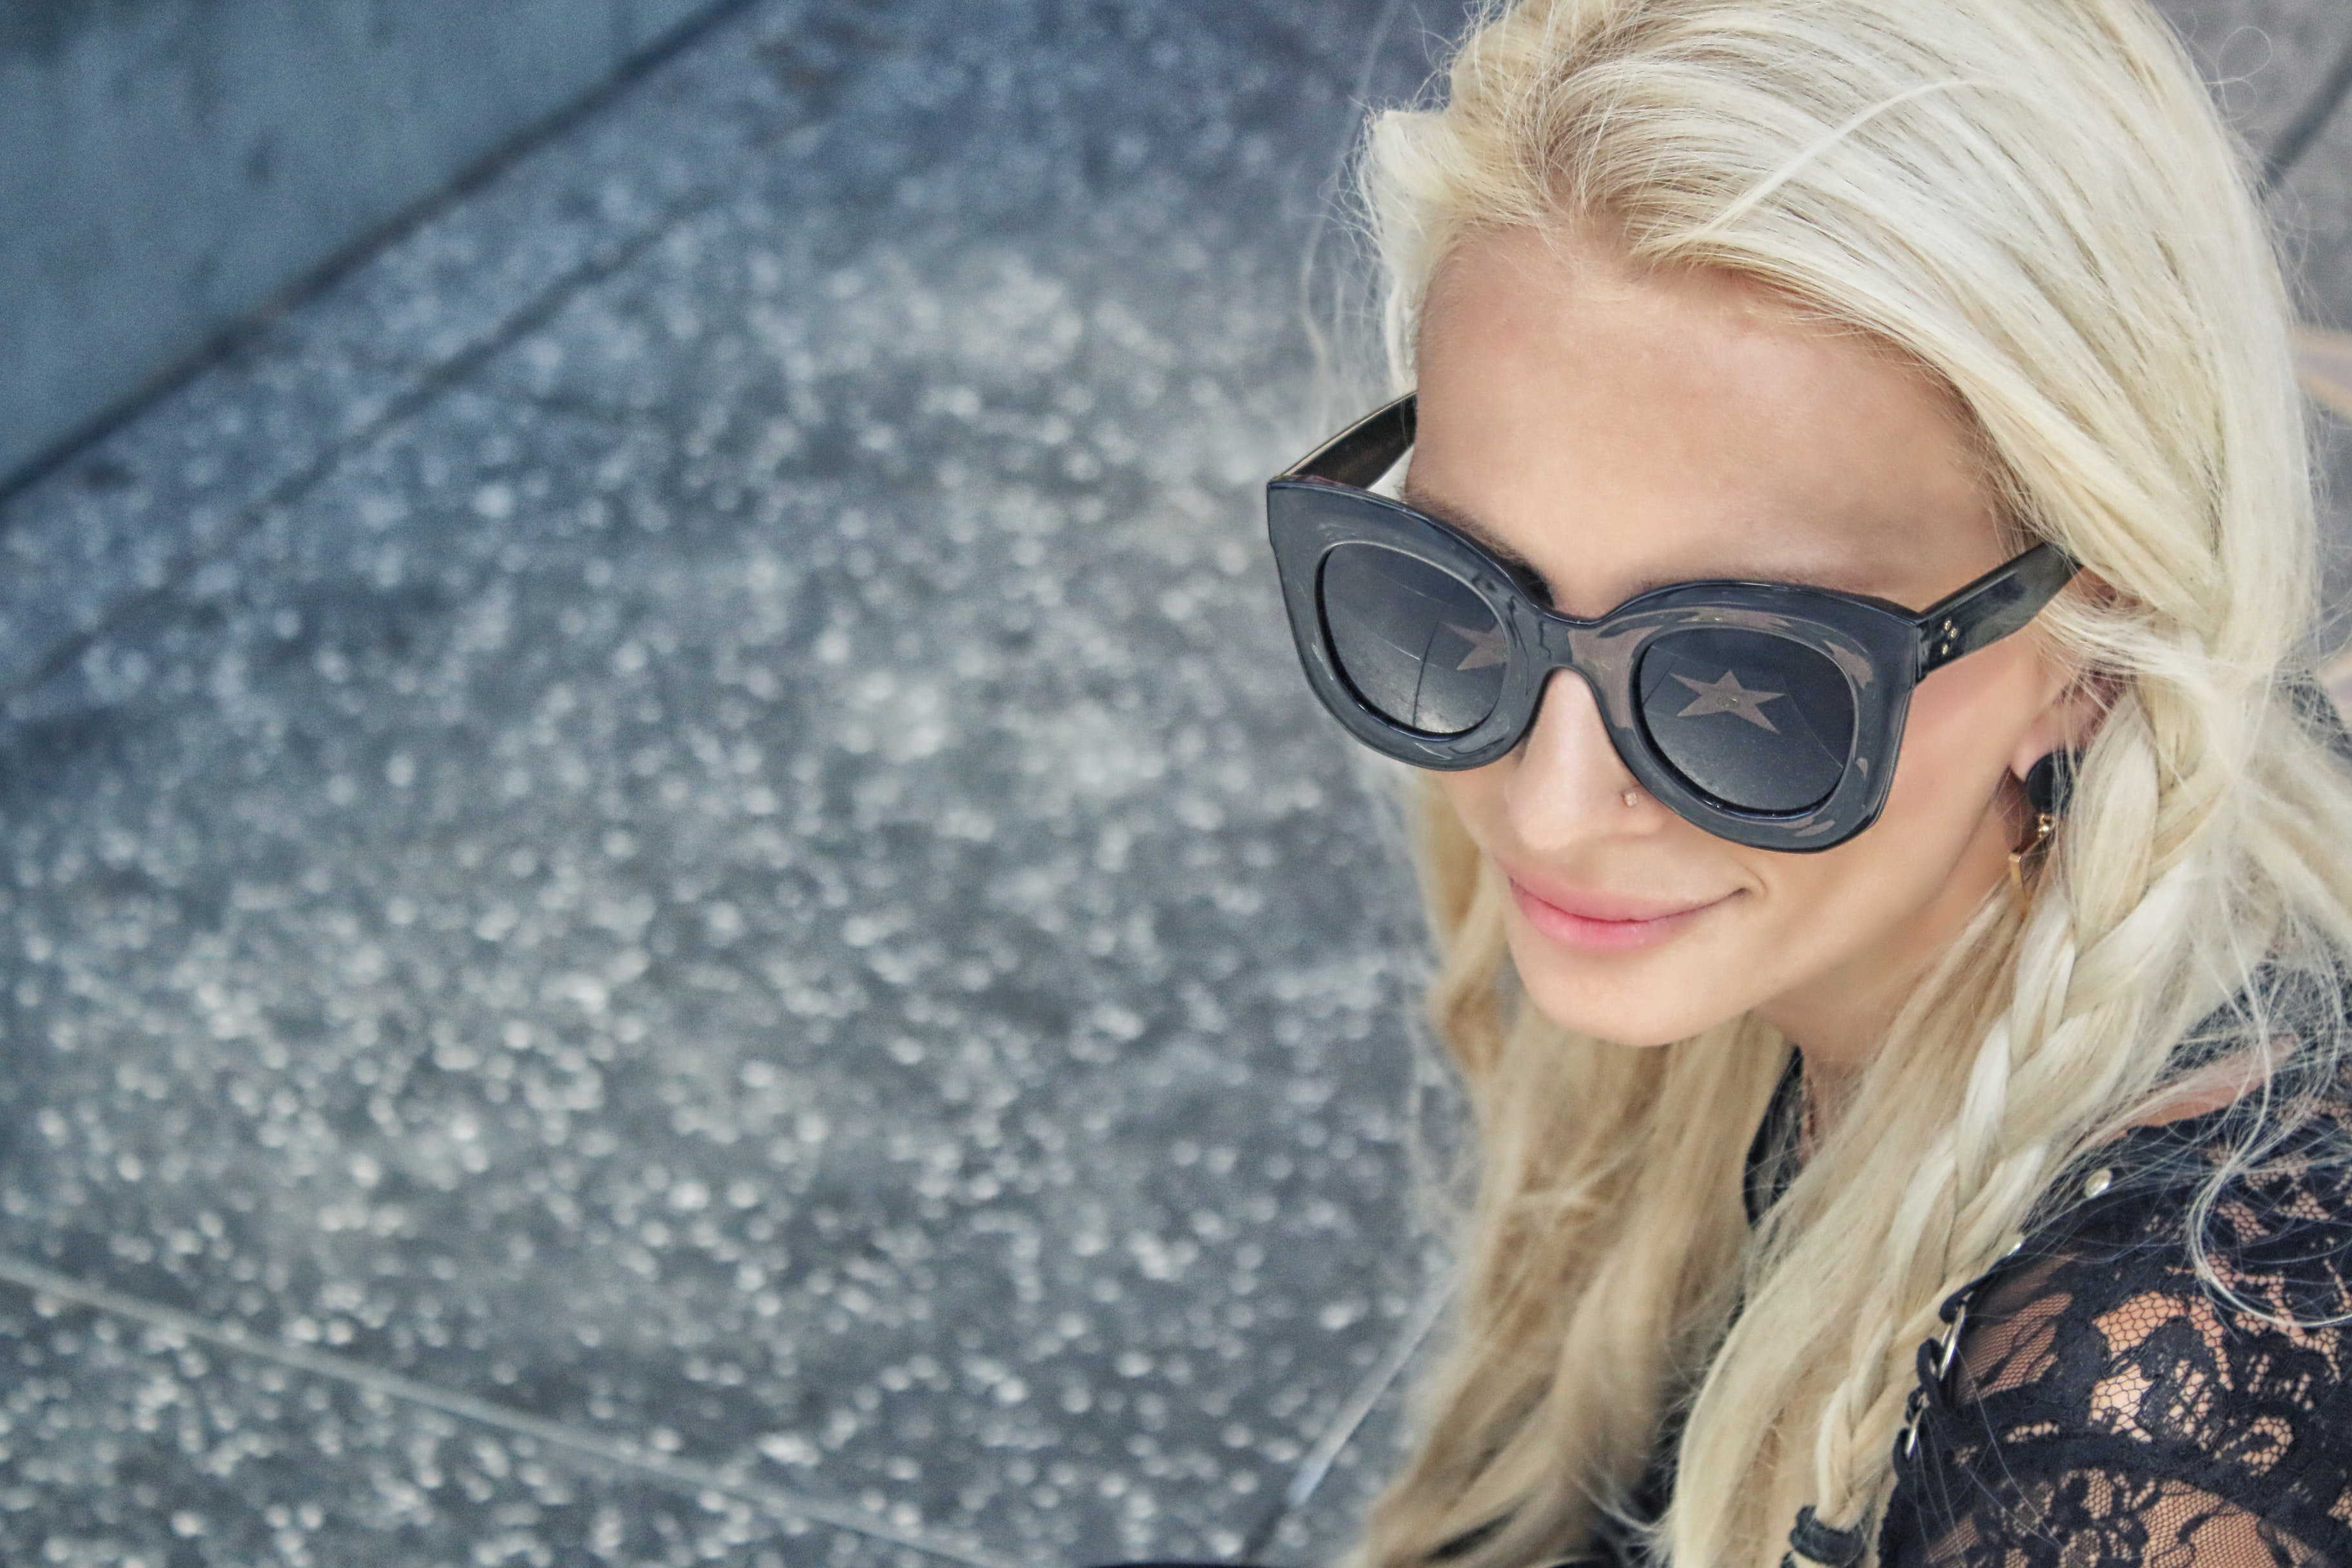 Woman Wearing Black Framed Wayfarer Style Sunglasses and Black Floral Top Near Gray Concrete Pavement, Photoshoot, Young, Woman, Sunglasses, HQ Photo